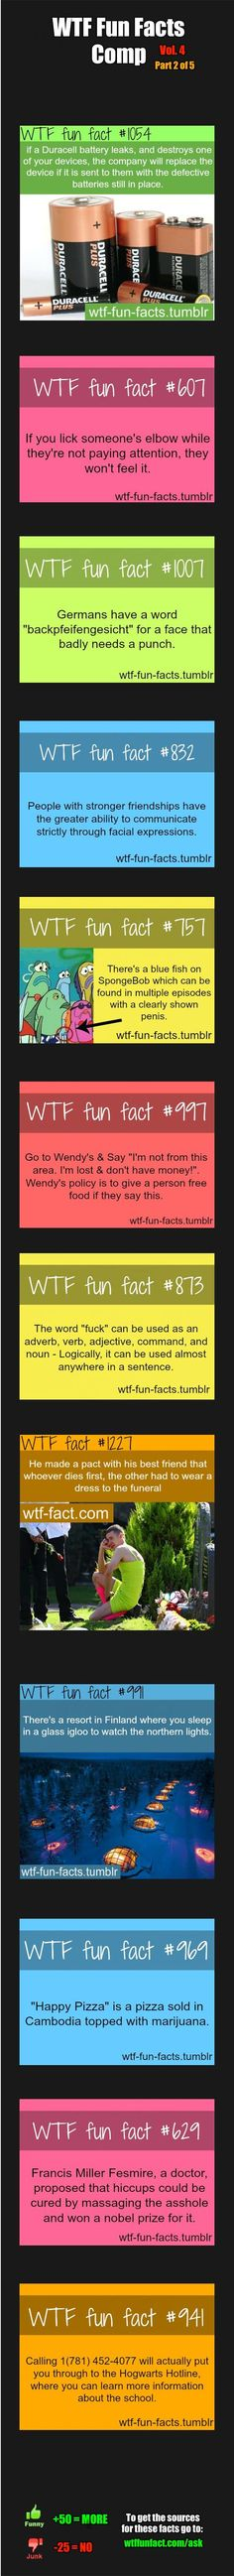 WTF Fun Facts Comp Vol. 4 Part 2: